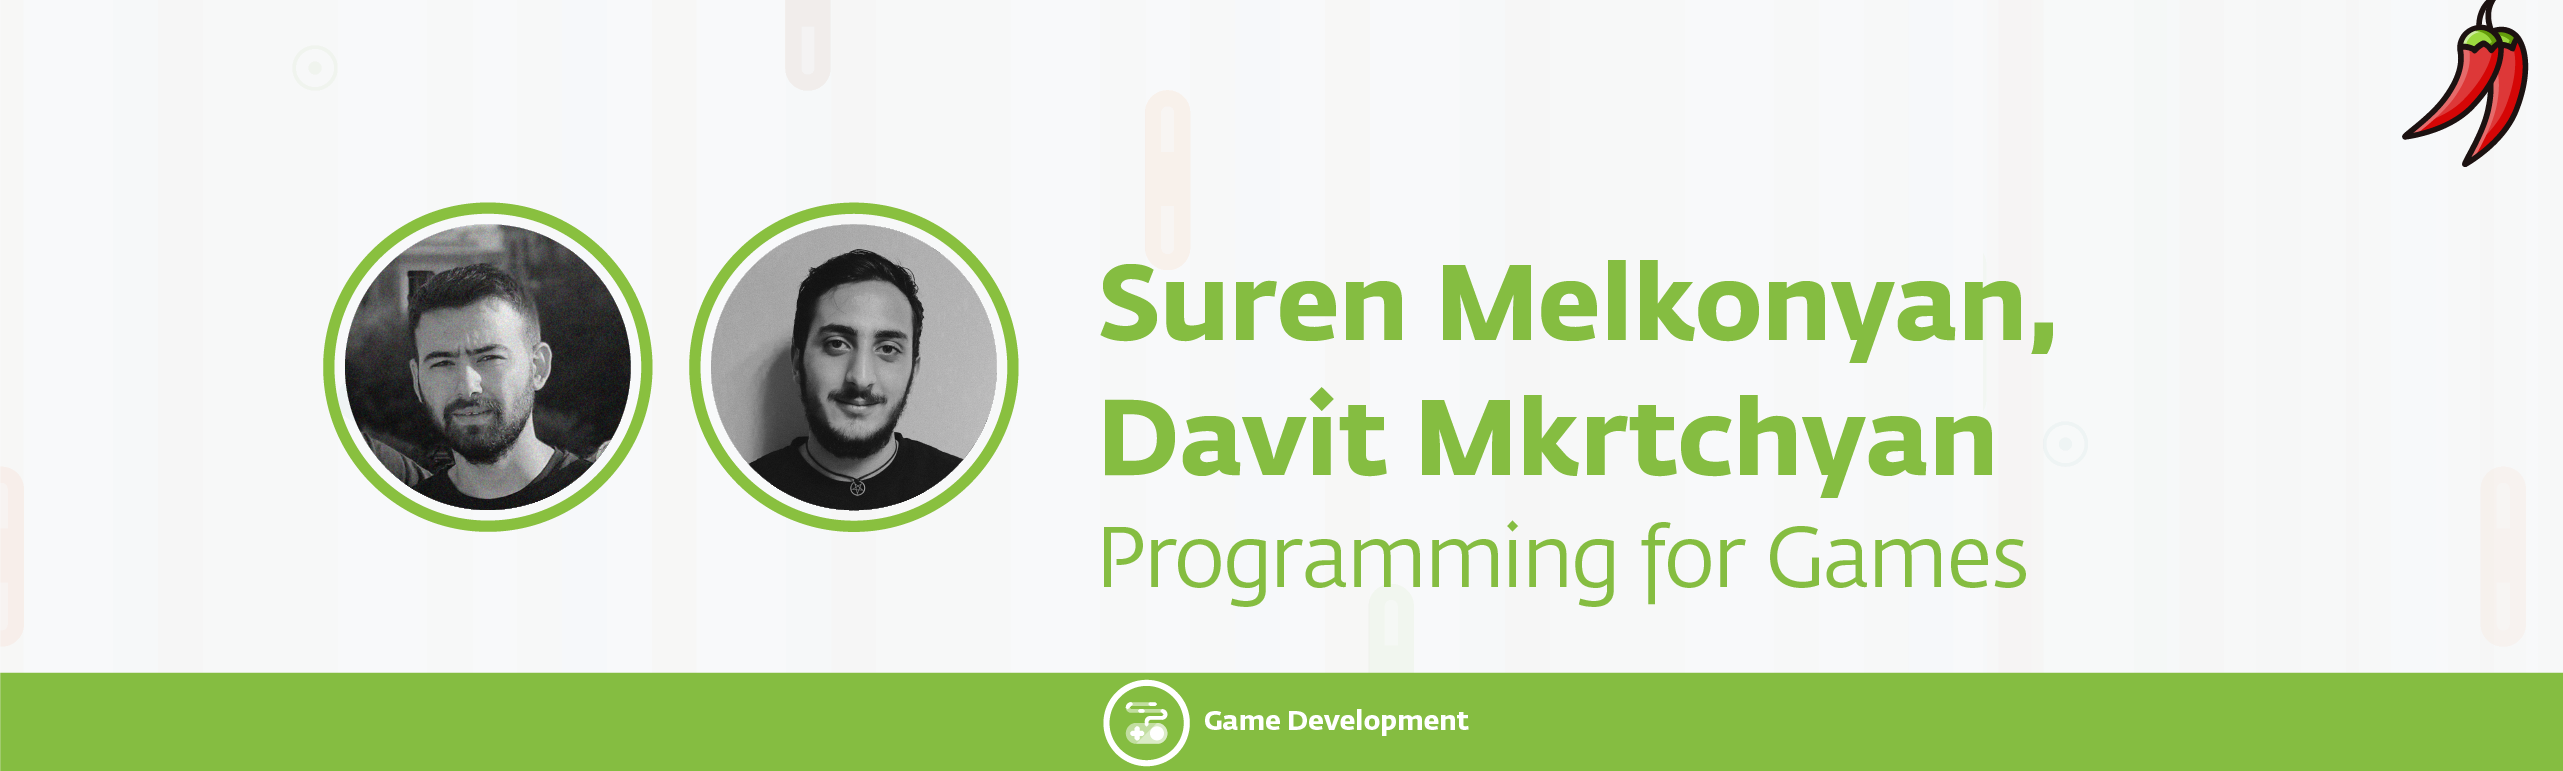 23 - Programming for Games